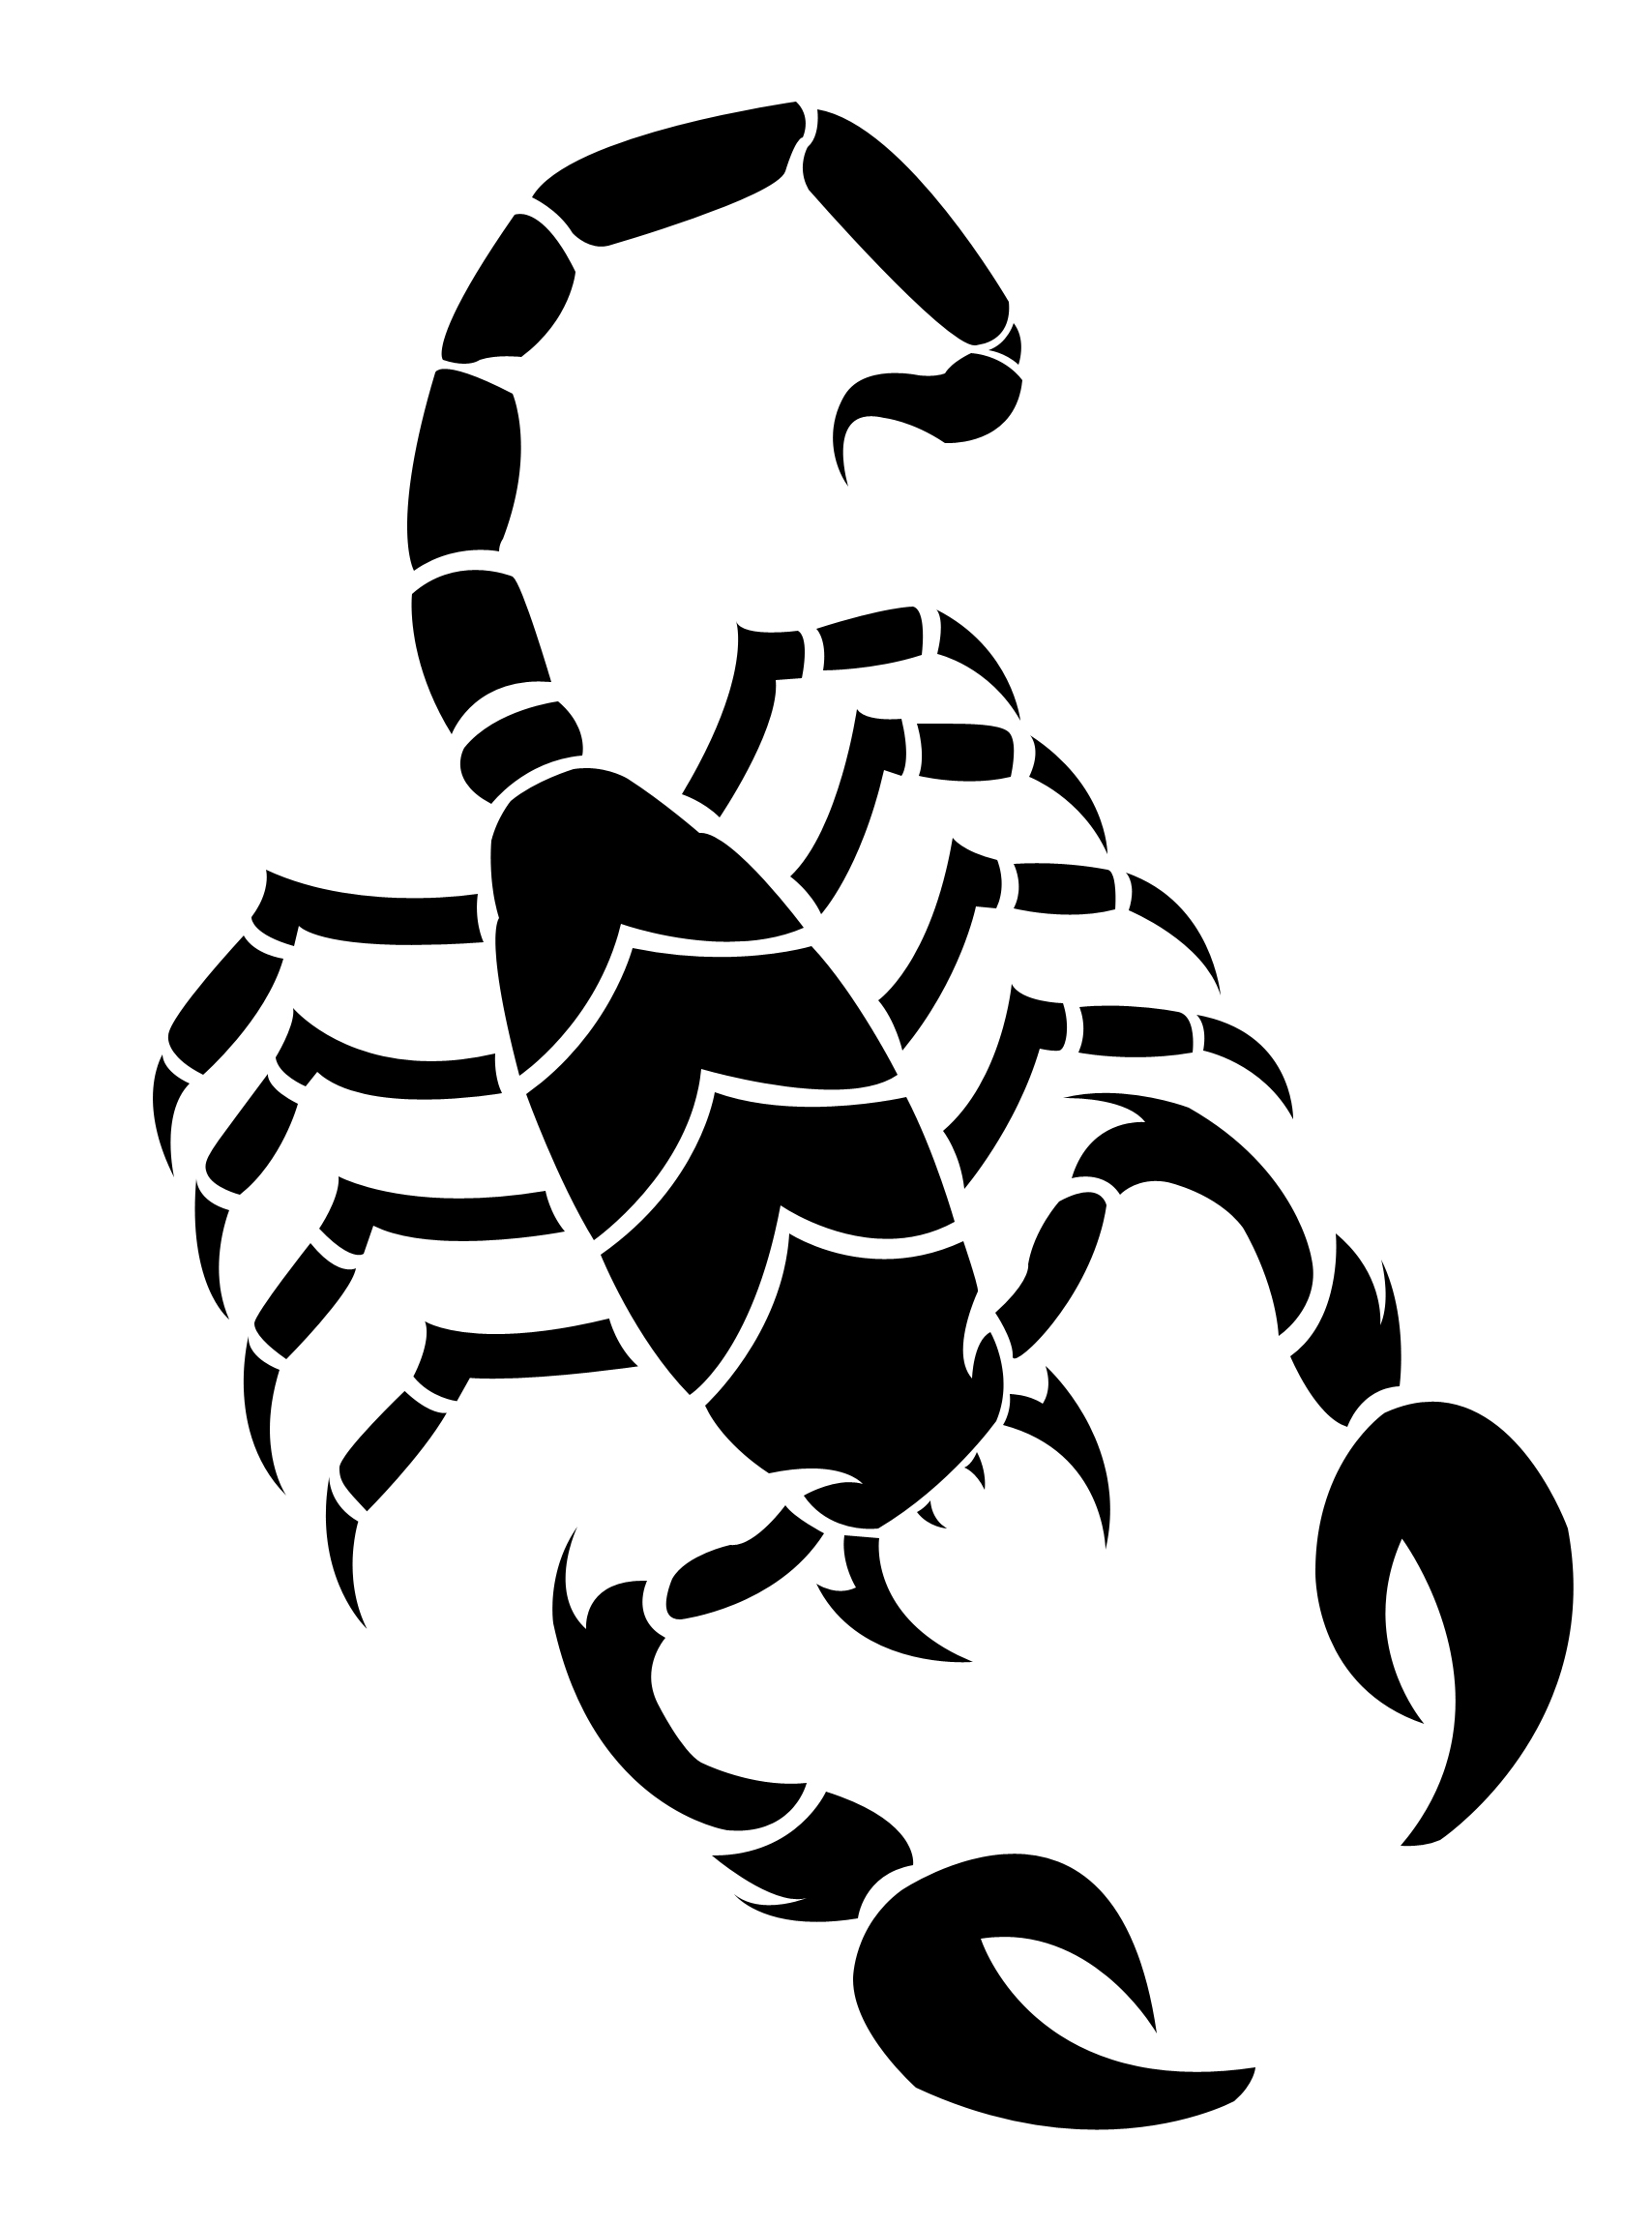 Scorpion clipart Vector drawing Scorpion art WikiClipArt